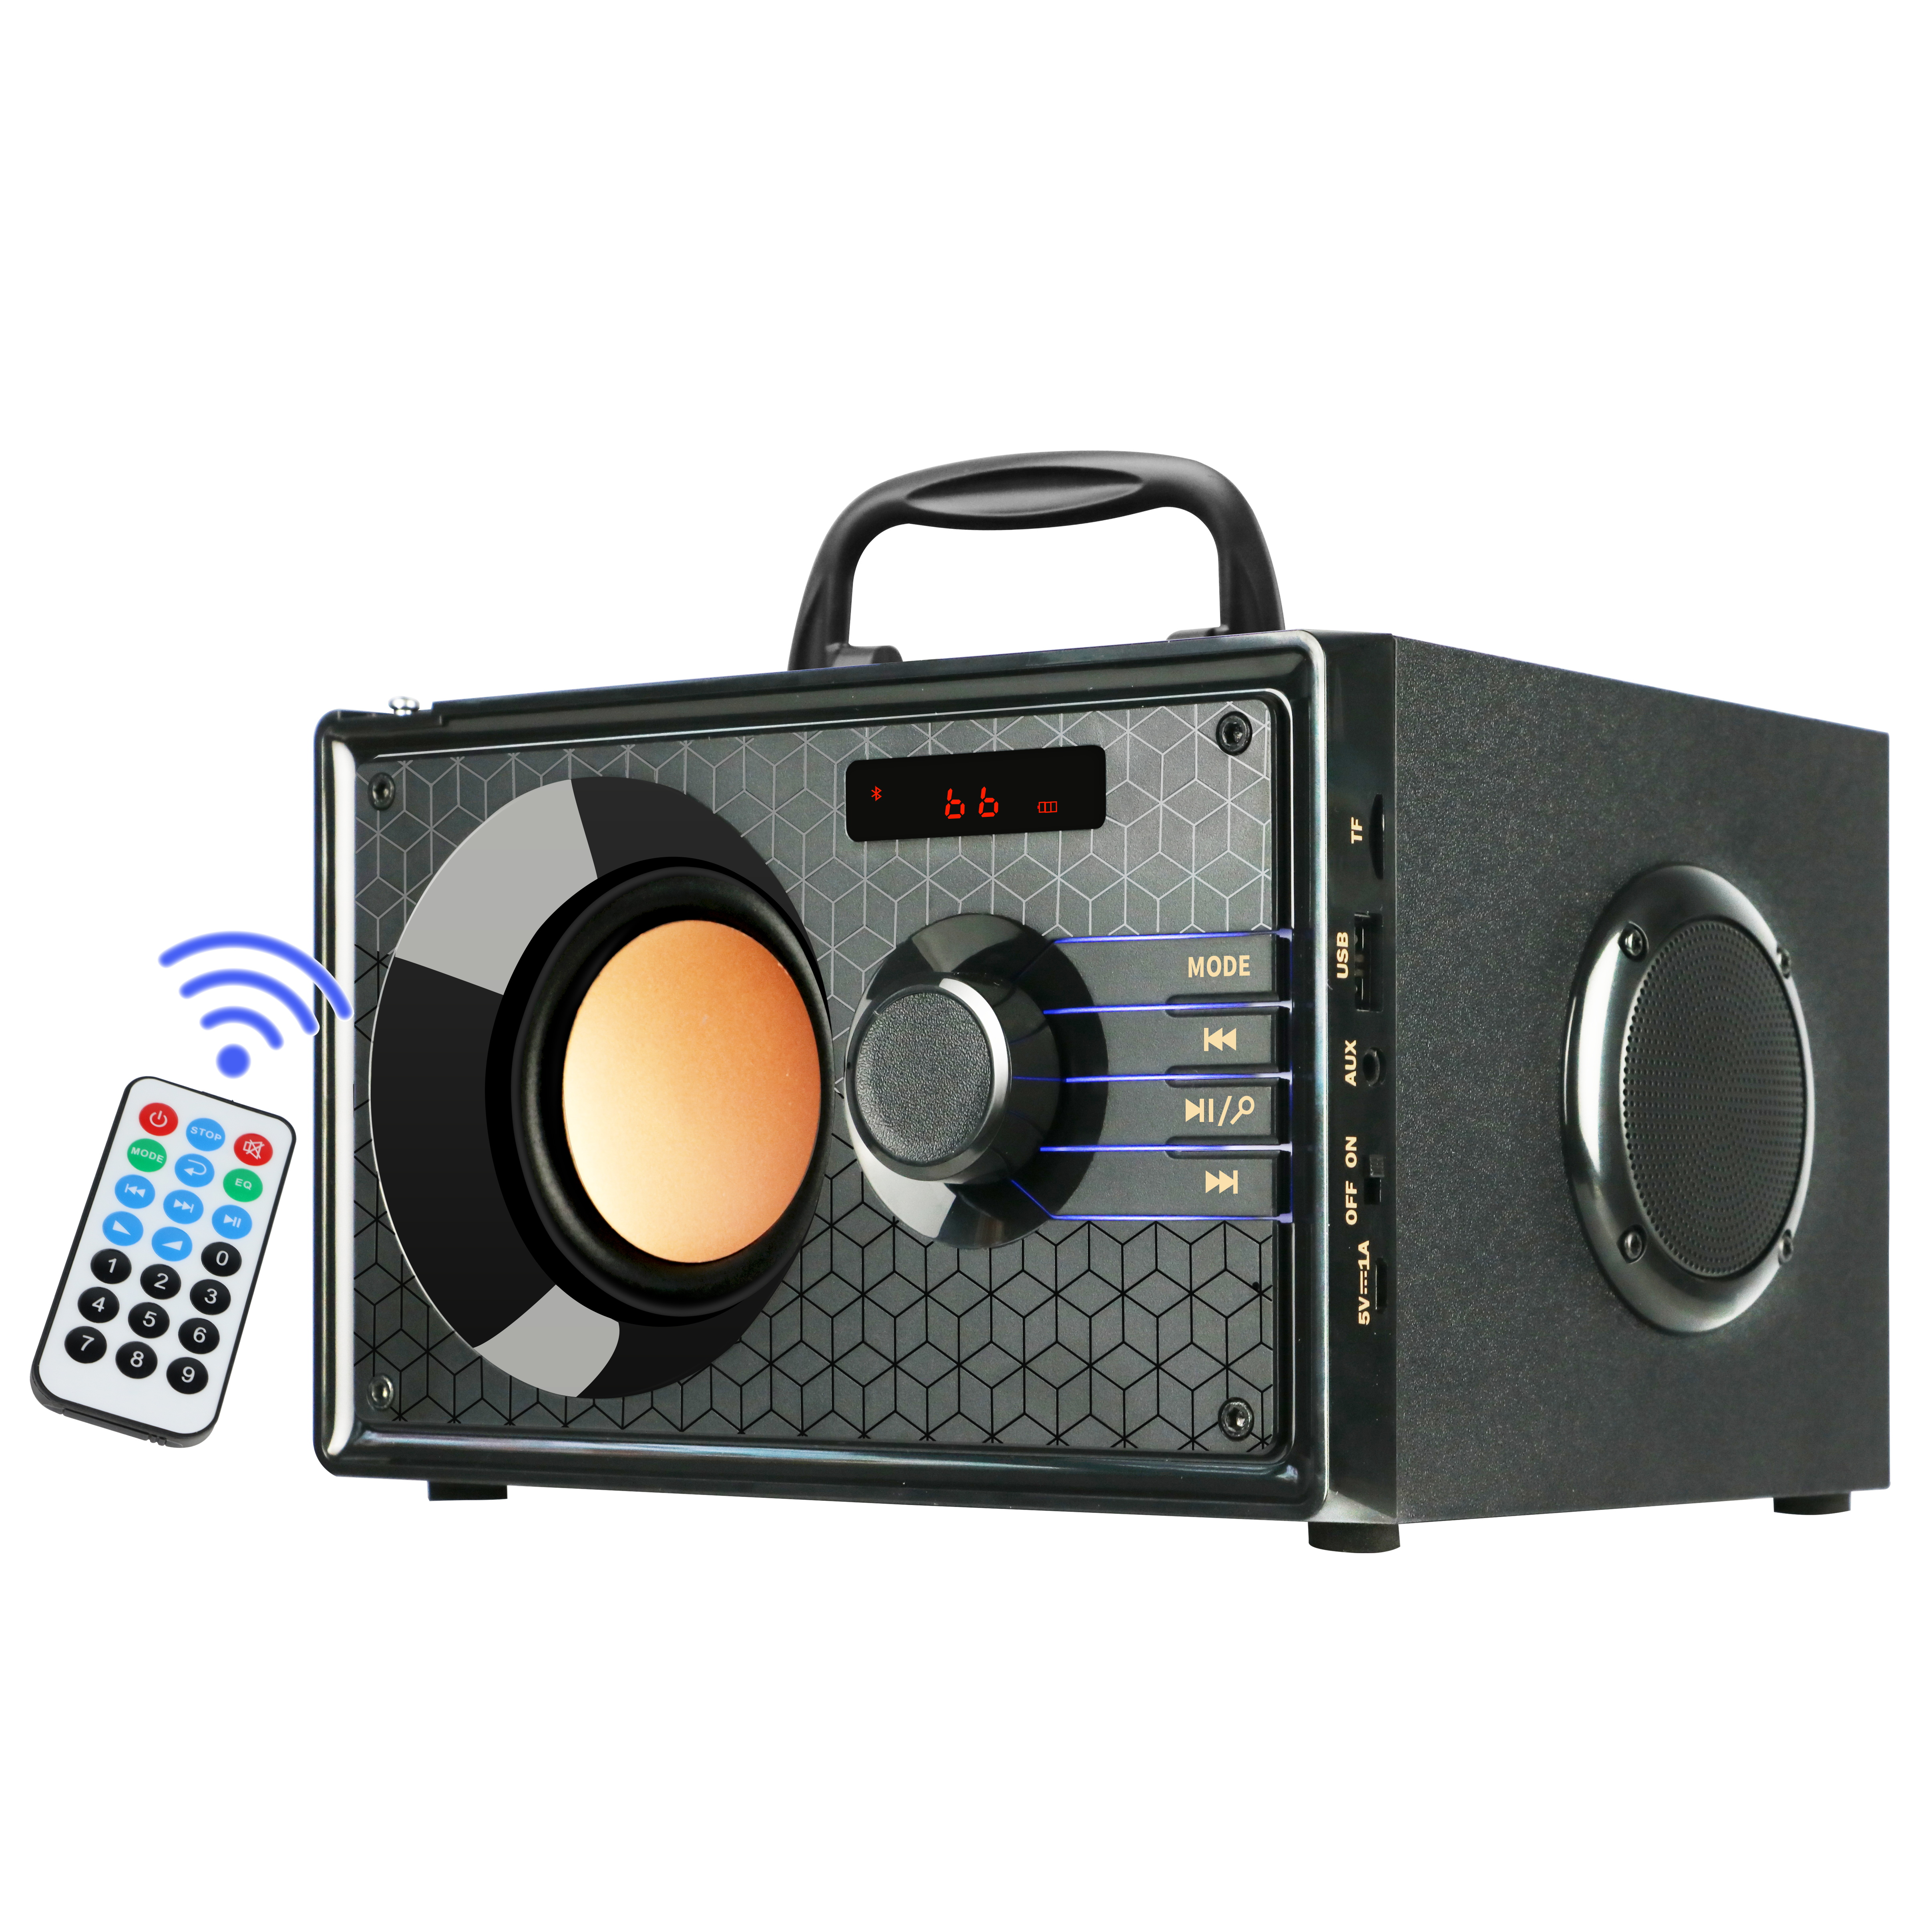 TOPROAD Portable Bluetooth Speaker Wireless Big Power Speakers Stereo Subwoofer Bass Sound Box Support FM AUX TF Remote Control|Outdoor Speakers| - AliExpress